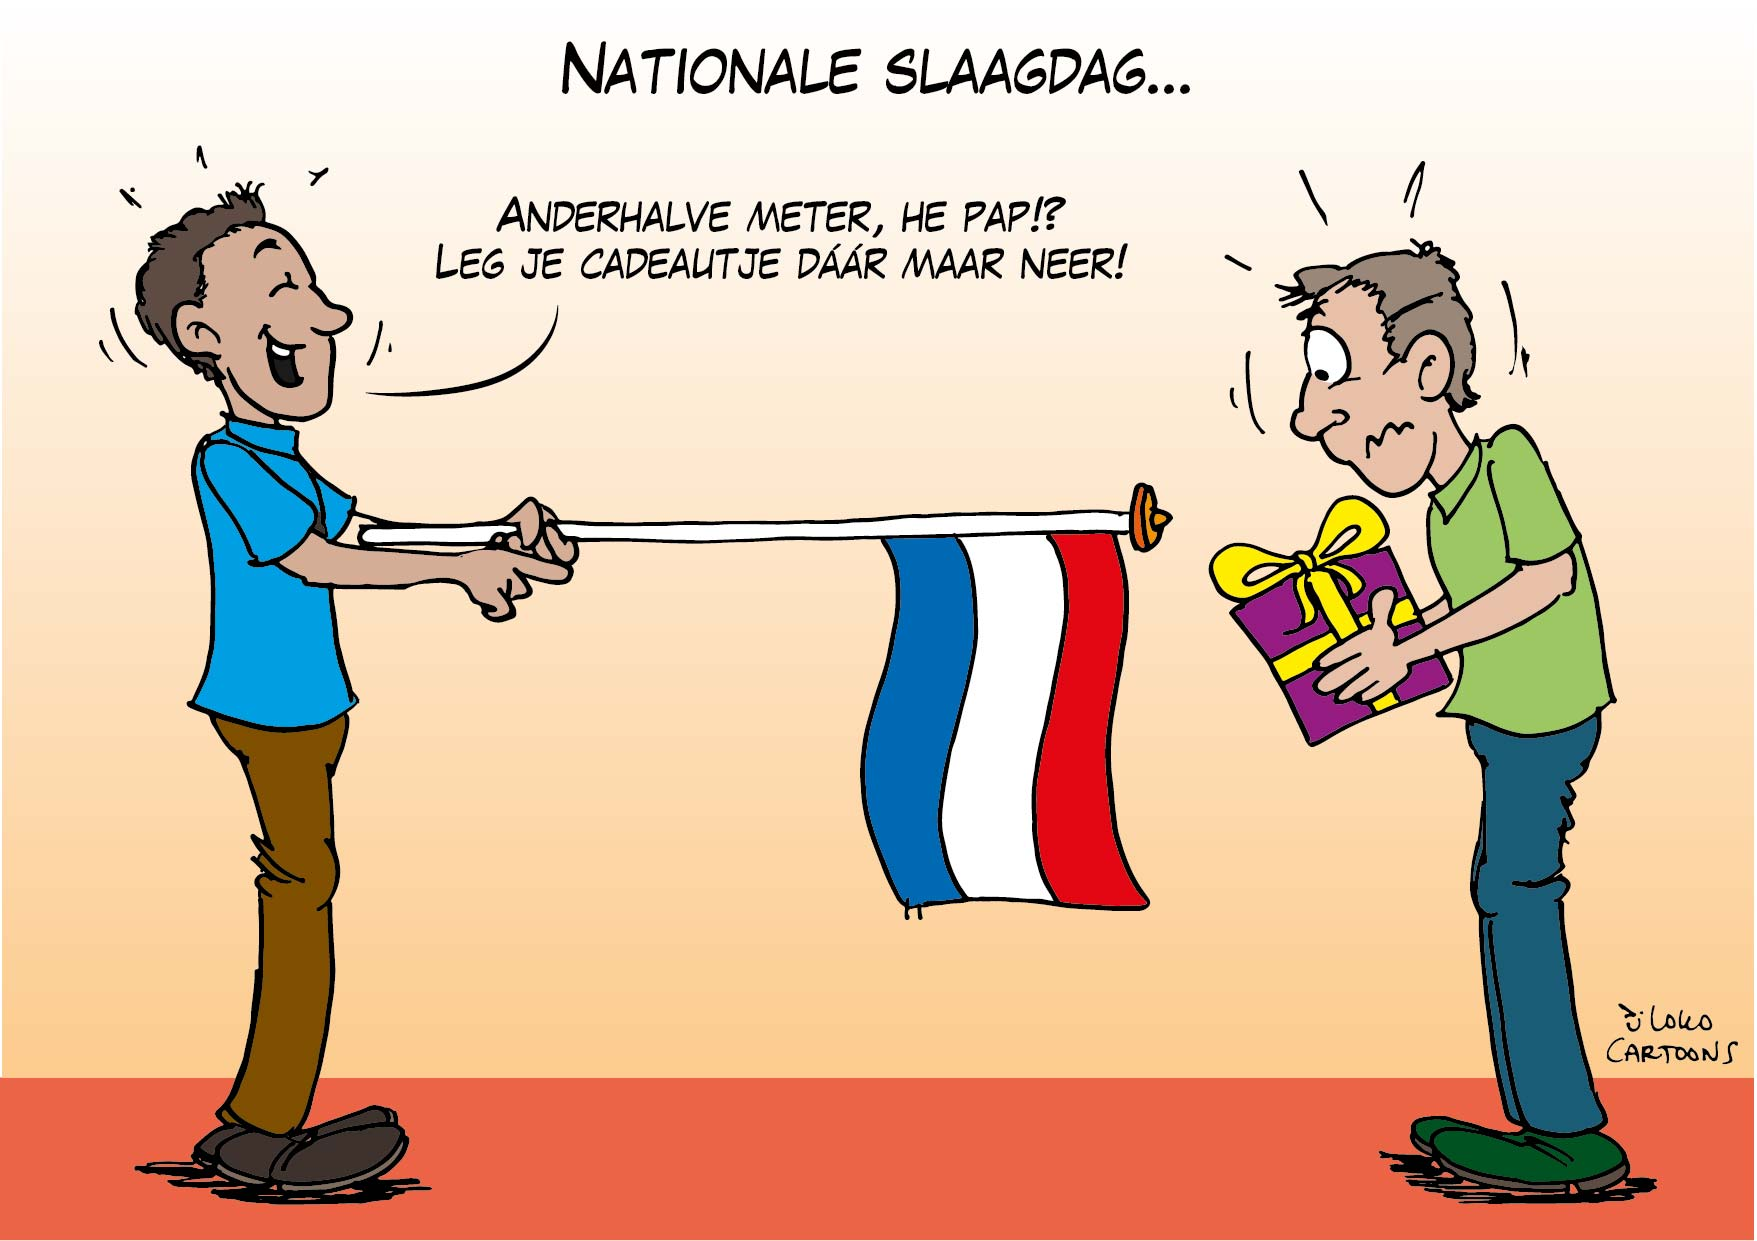 Nationale slaagdag…